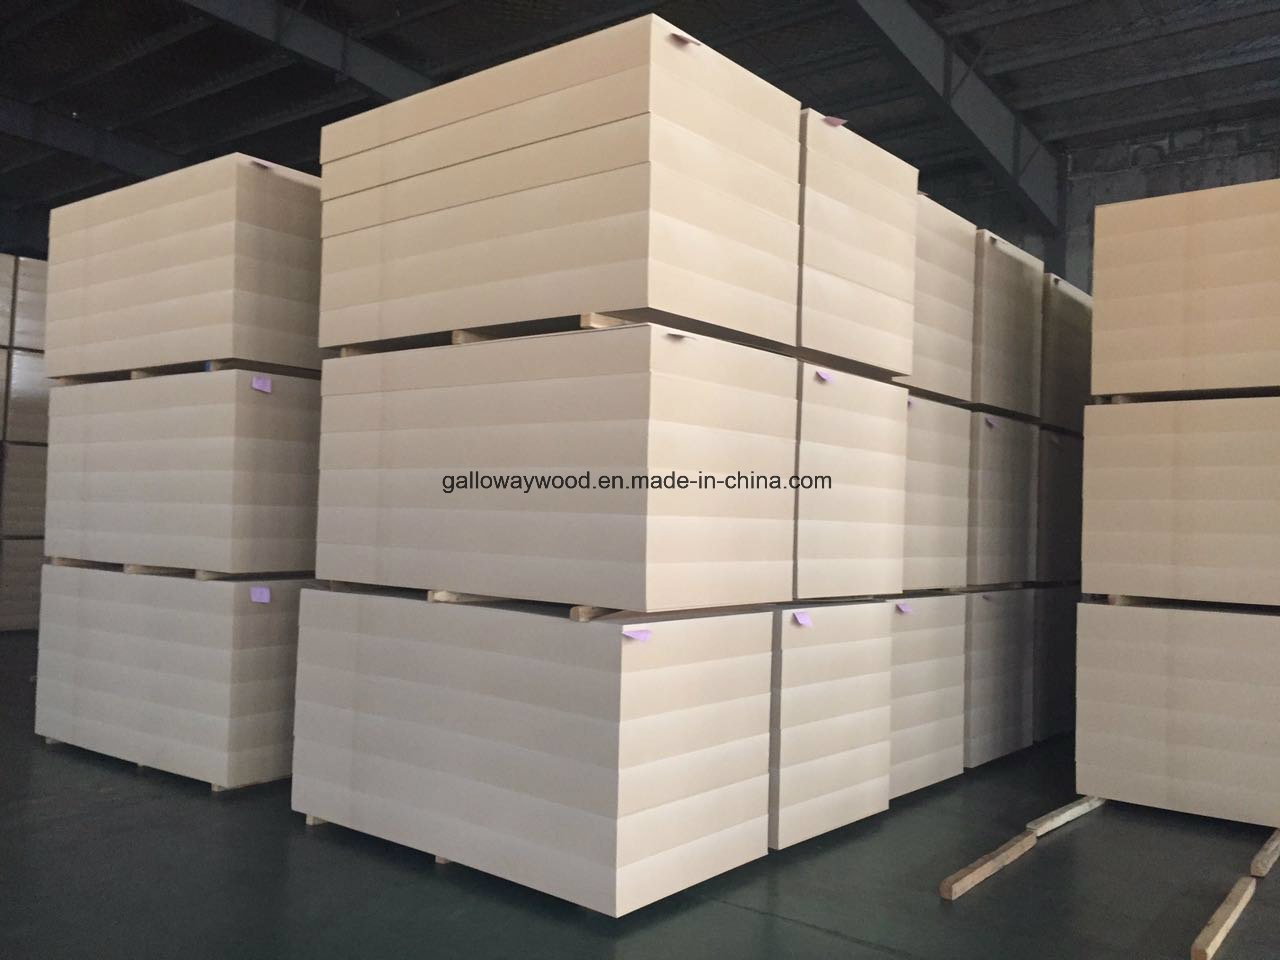 12mm Lamianted Flooring Substrates Density Over 820kg Per Cbm